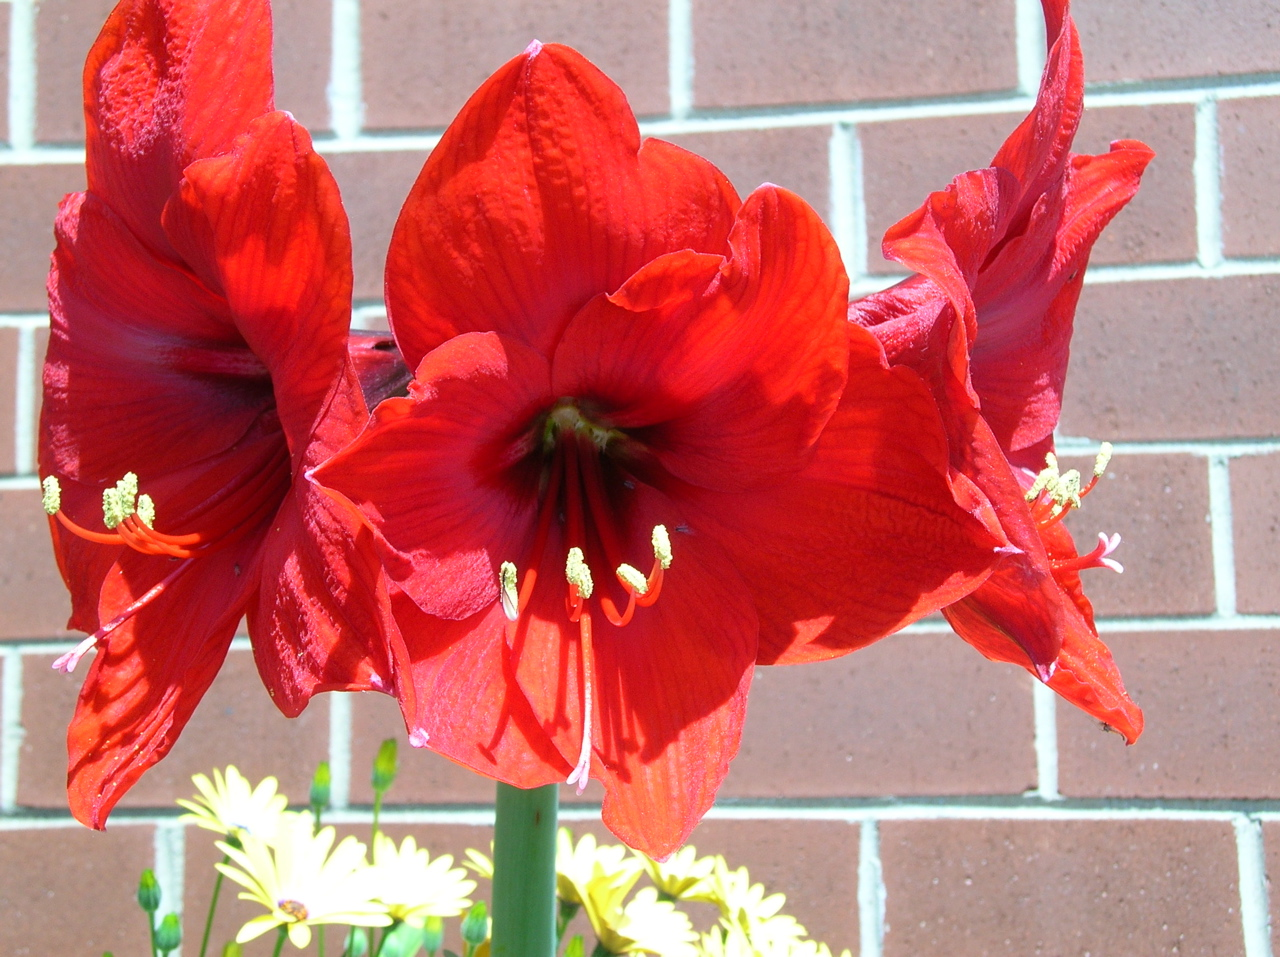 flowers for flower lovers Amaryllis Red Lion flower bulb Hippeastrum Ama